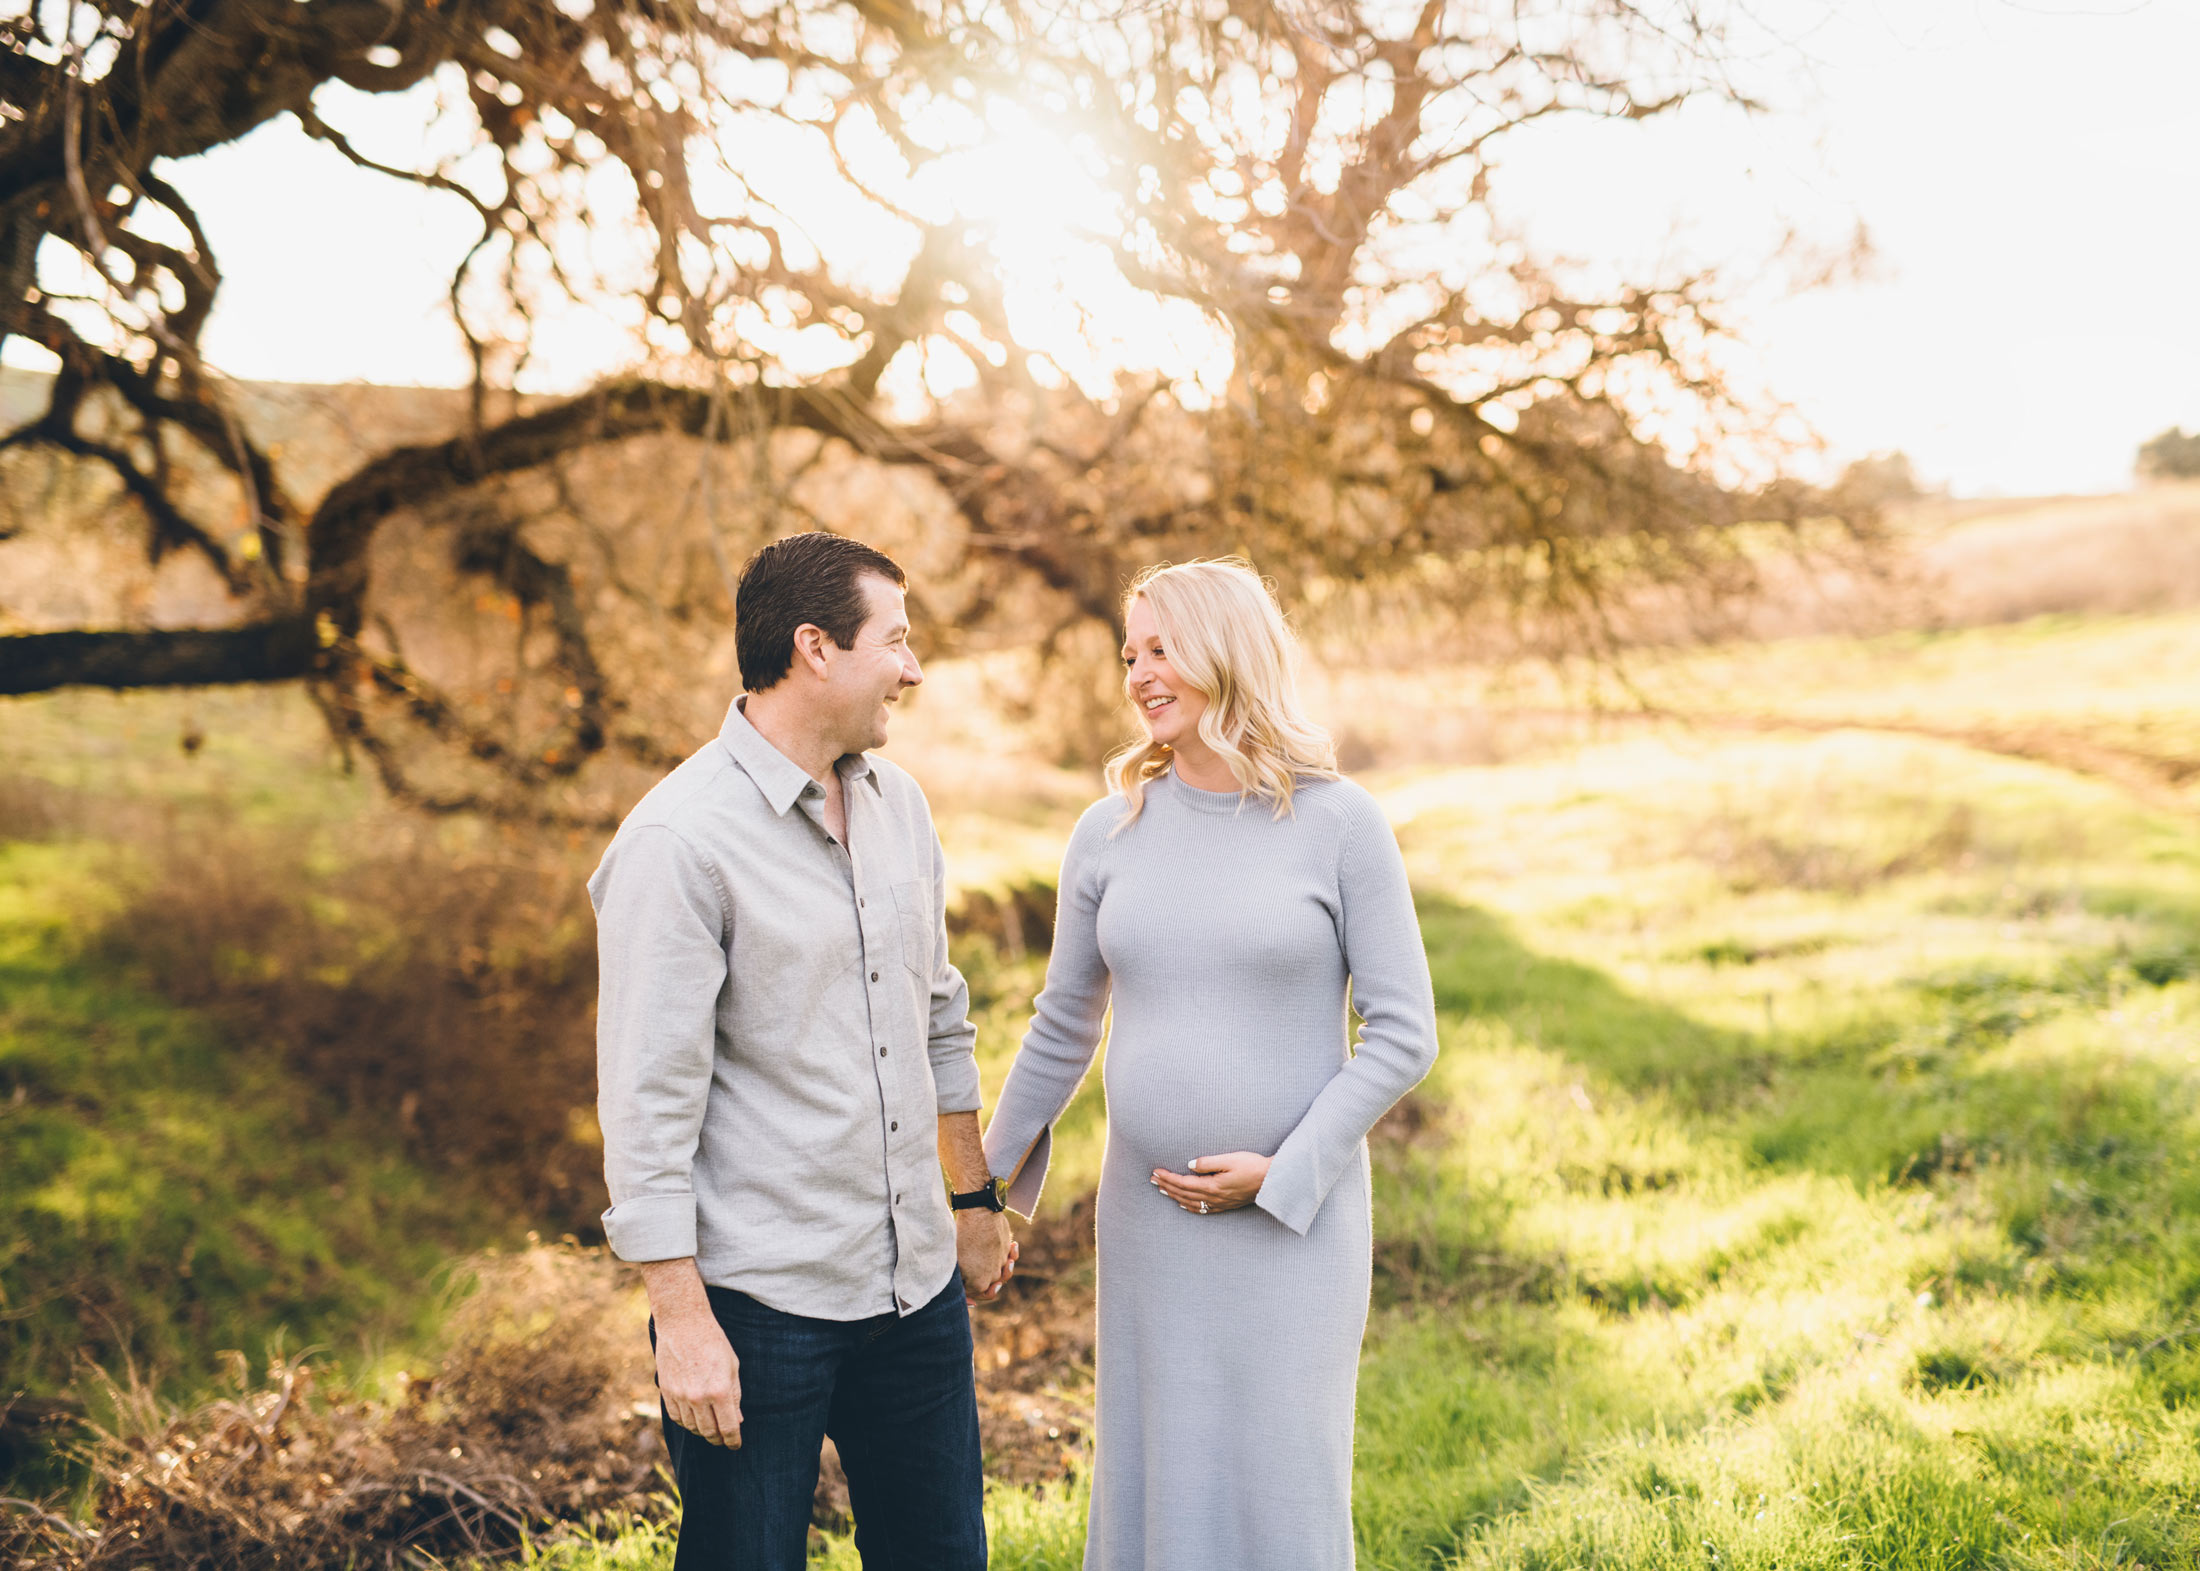 maternity-session-ideas-oak-trees-open-space.jpg